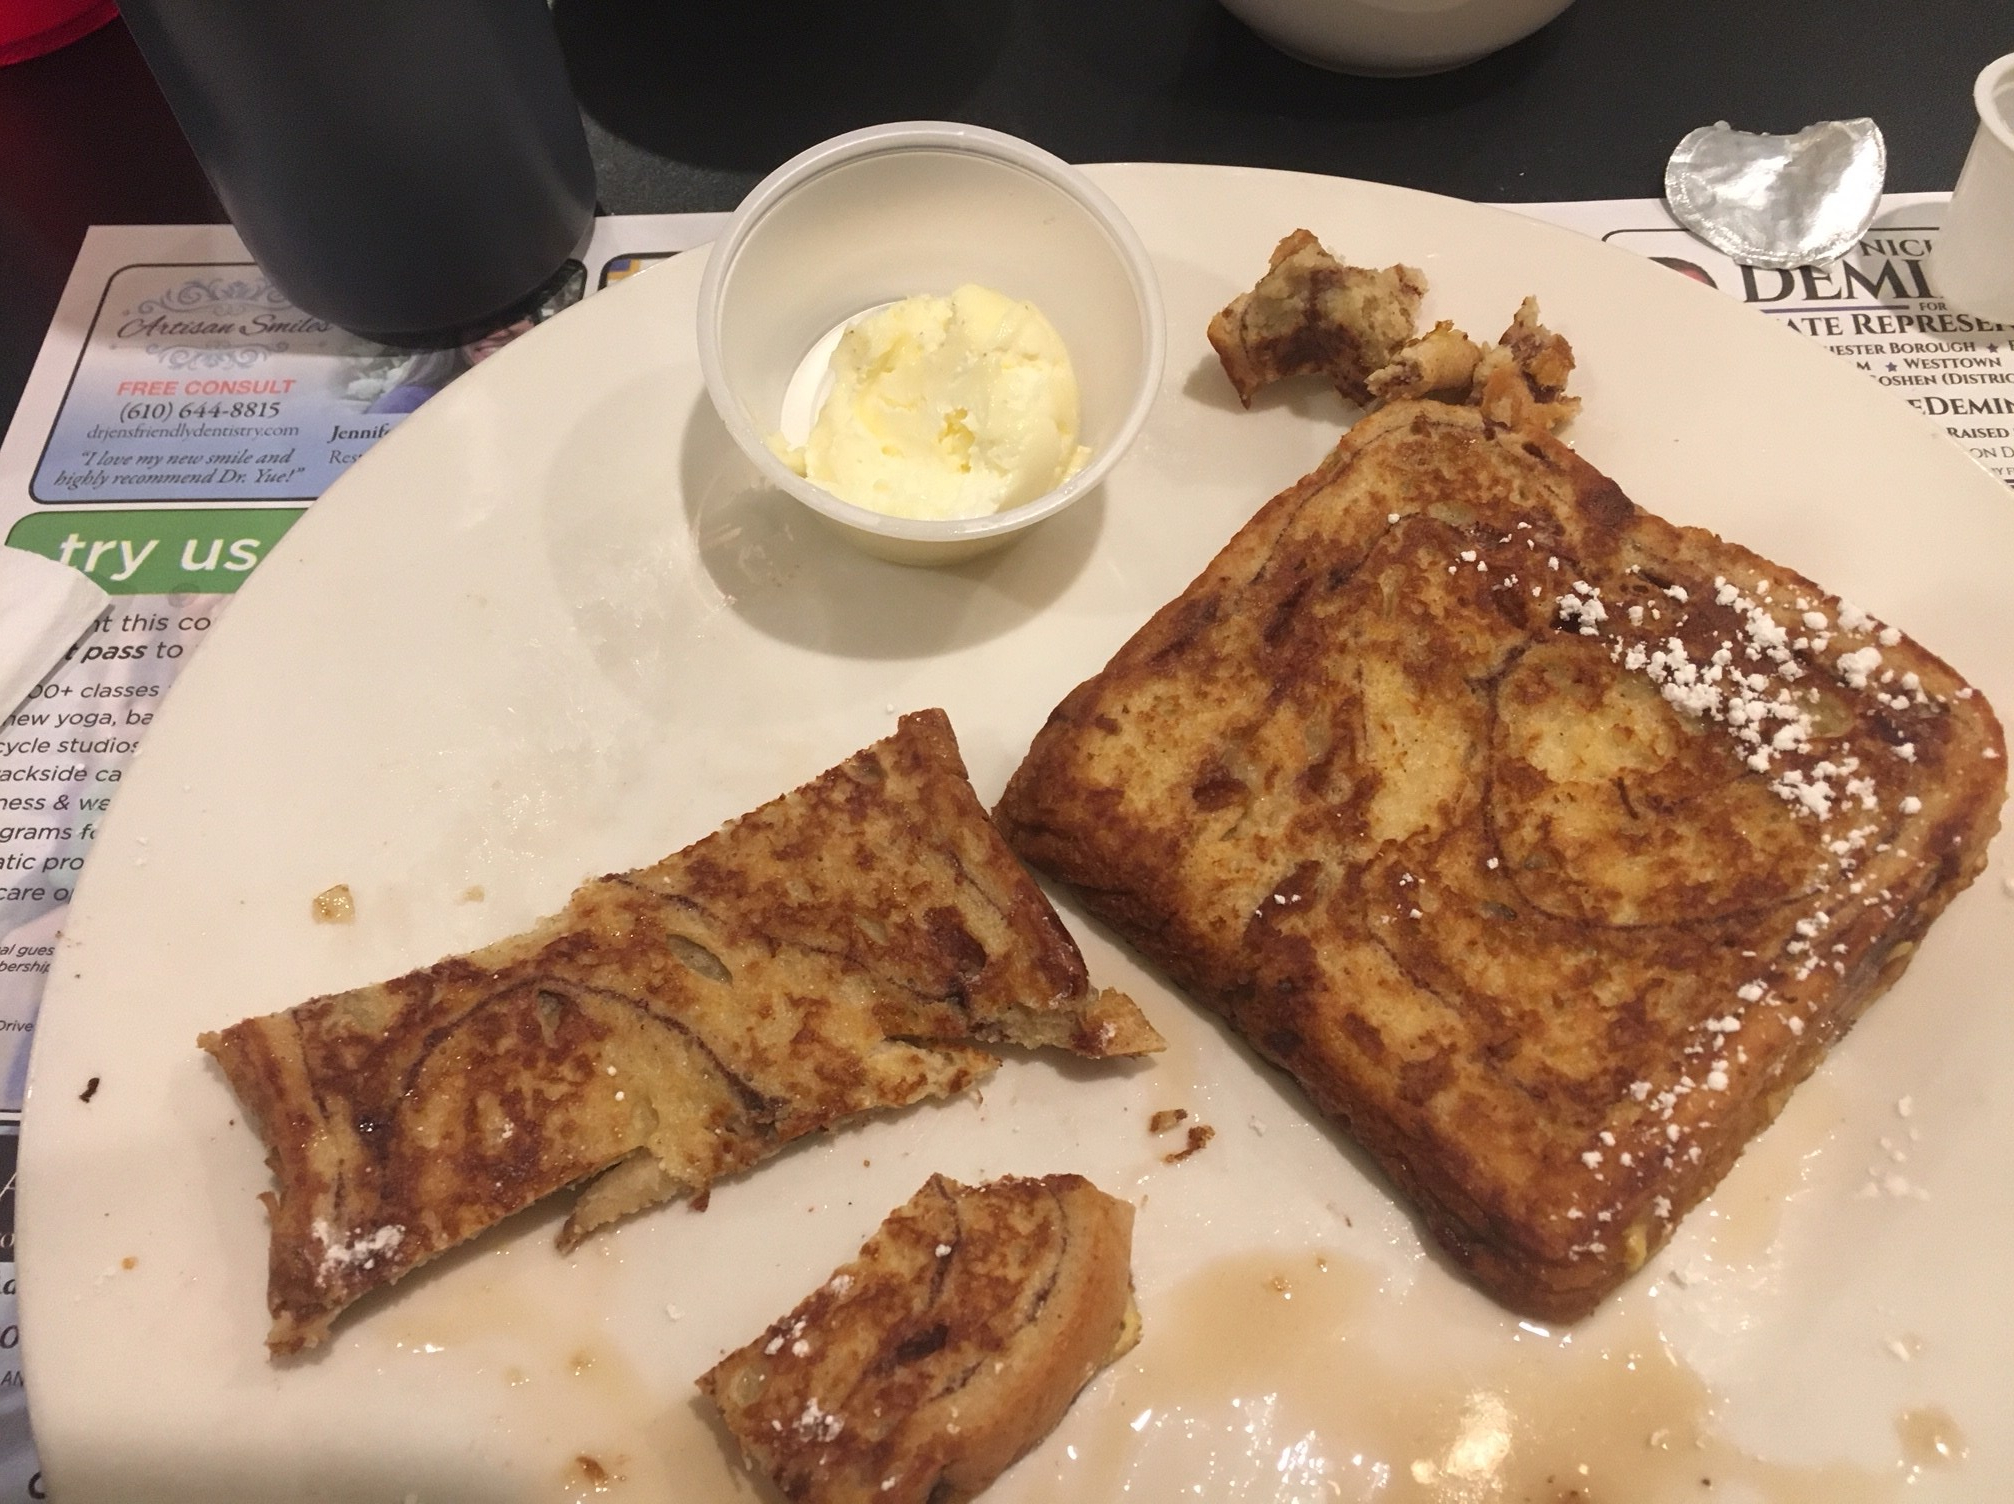 Cinnamon swirl french toast. Market Street Grill, West Chester, PA